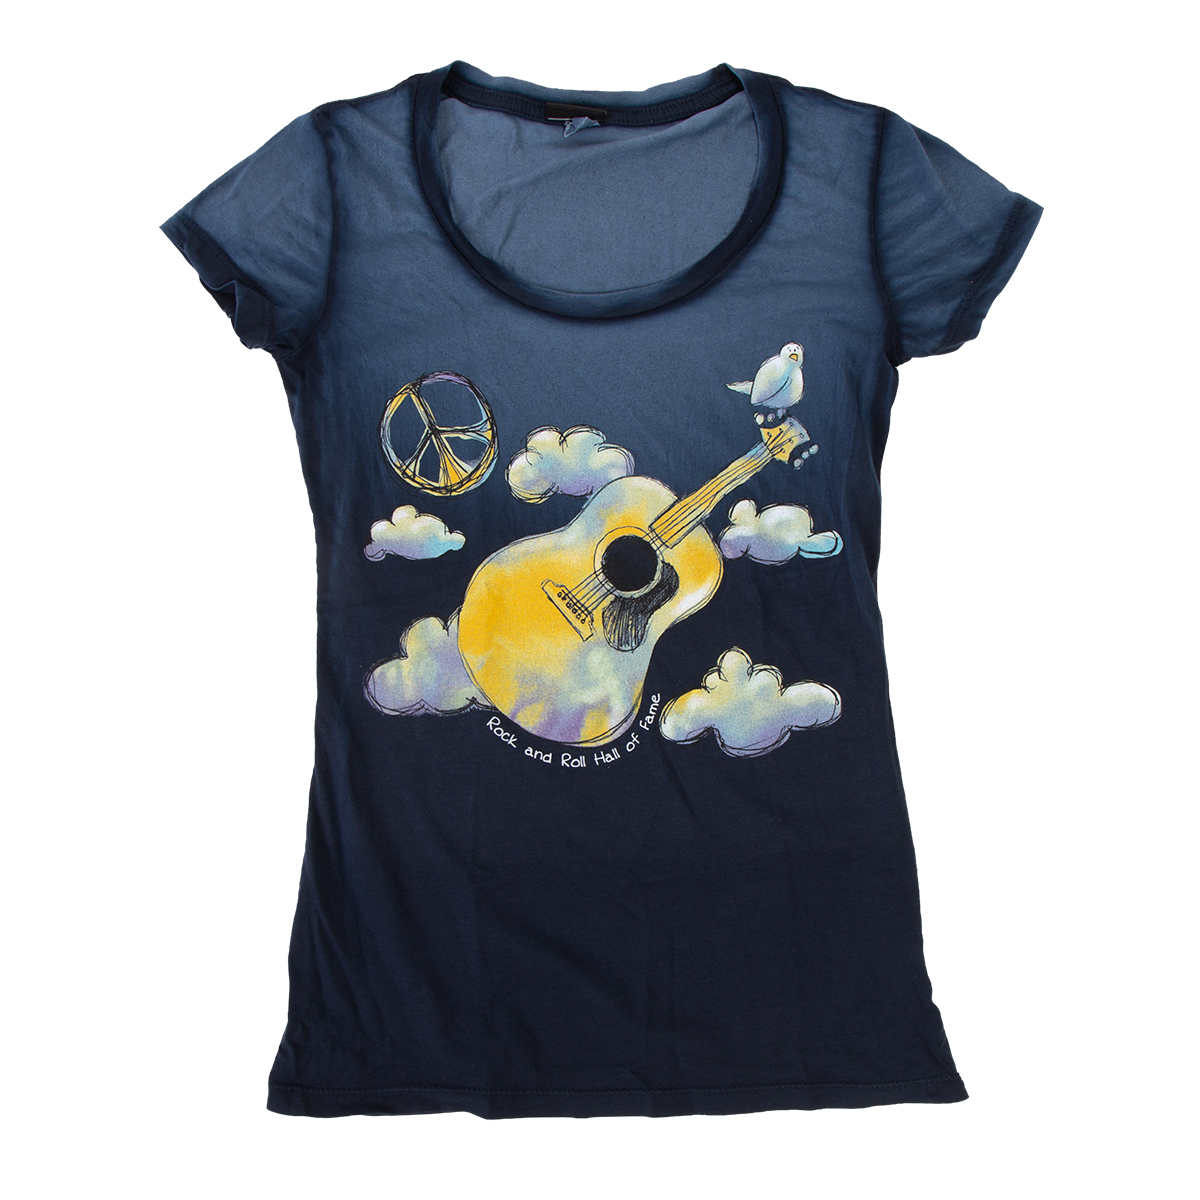 Peace & Dove In The Clouds Junior T-Shirt